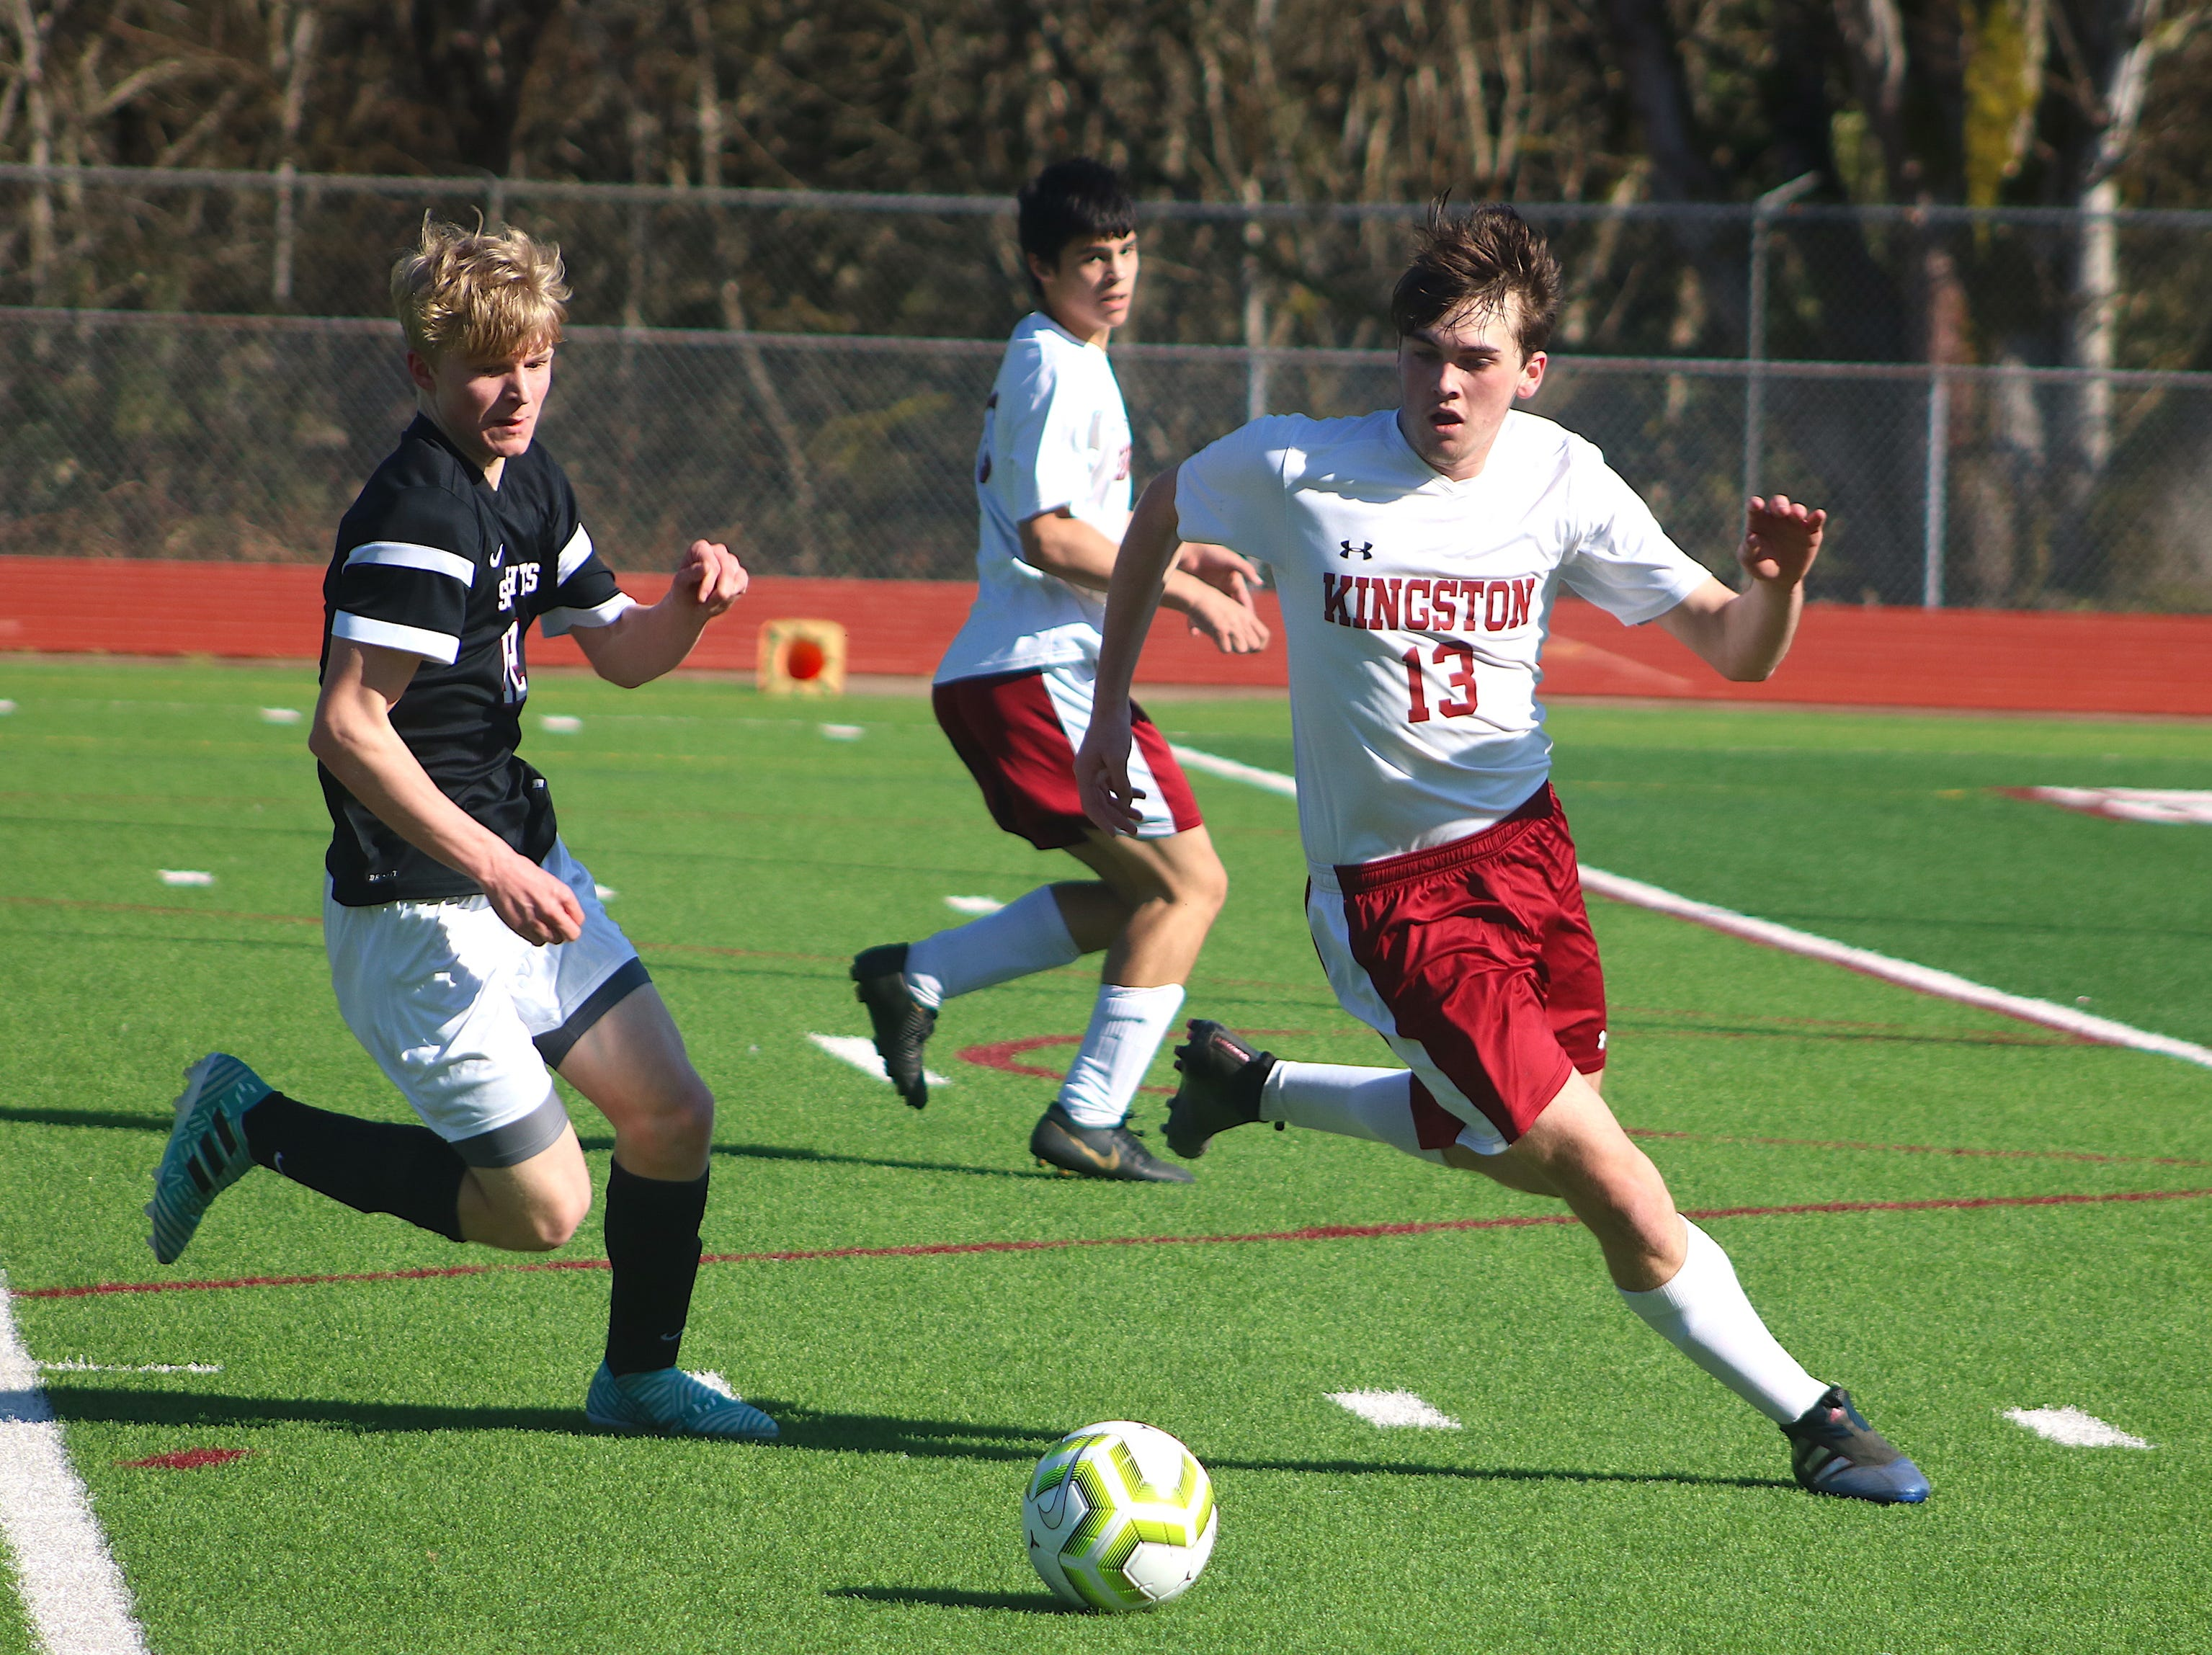 South Kitsap's boys soccer team defeated Kingston 3-0 in a nonleague game Saturday, March 9 in Port Orchard.